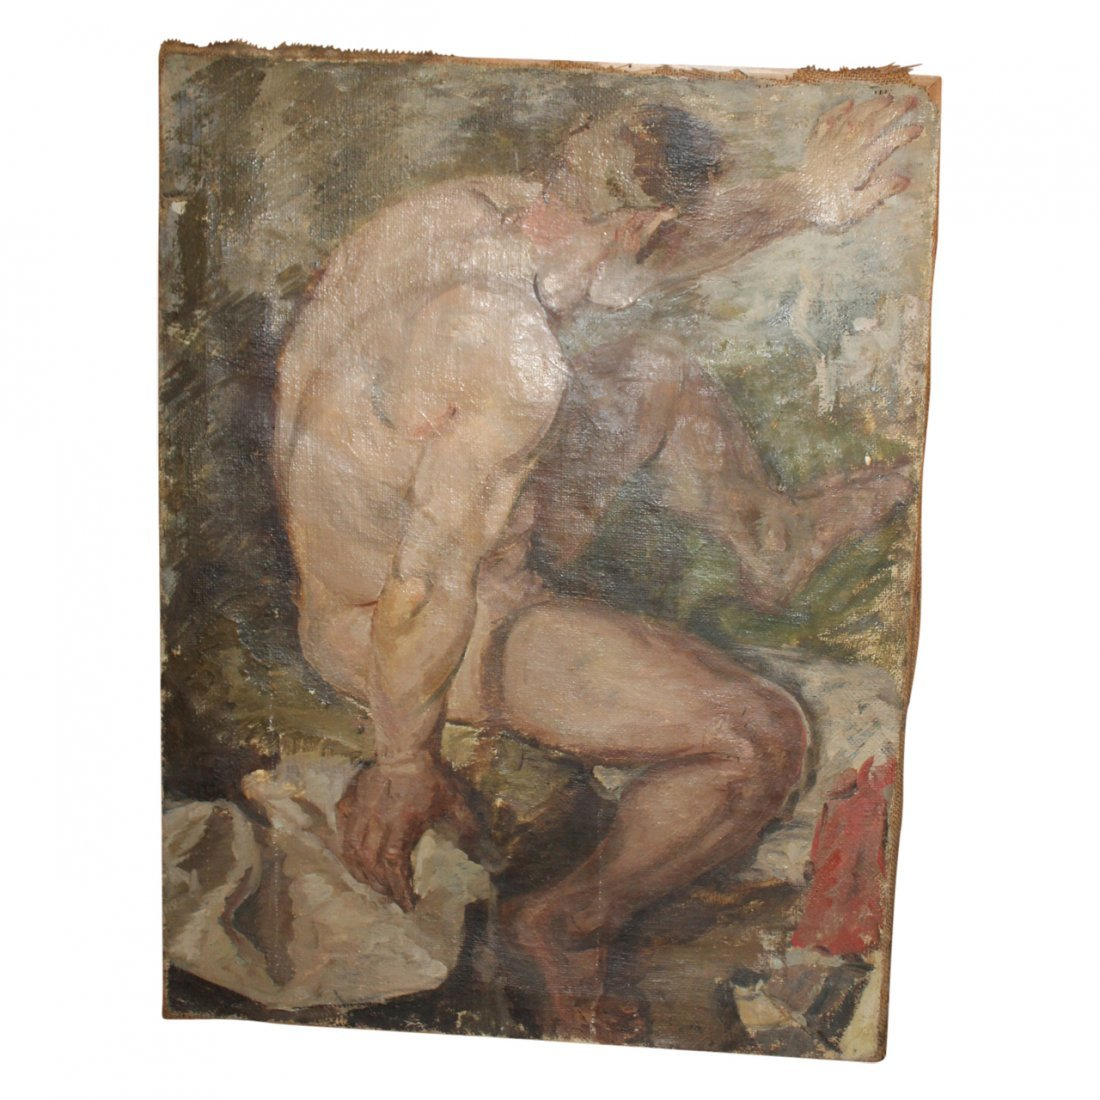 Painting of a Male Nude by Forshu Druga